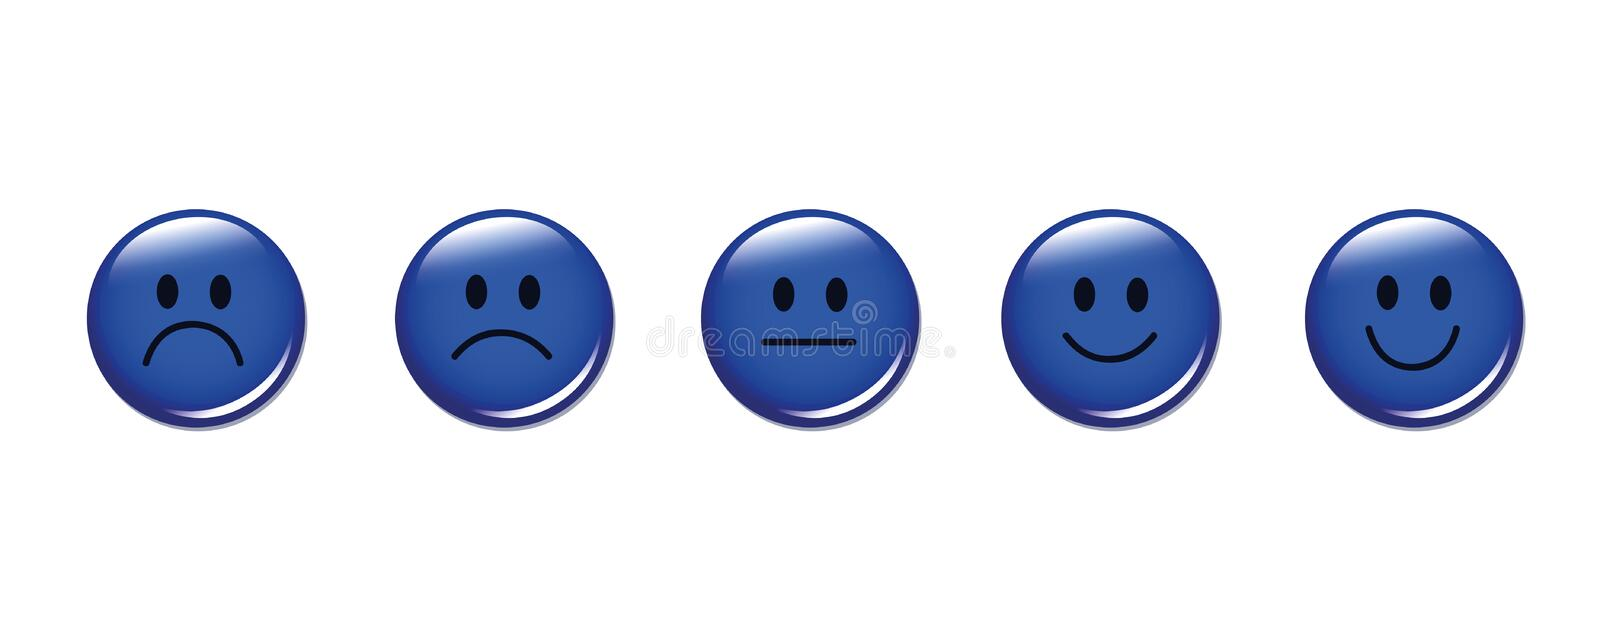 Rating smiley faces round blue. Vector illustration EPS10 stock illustration